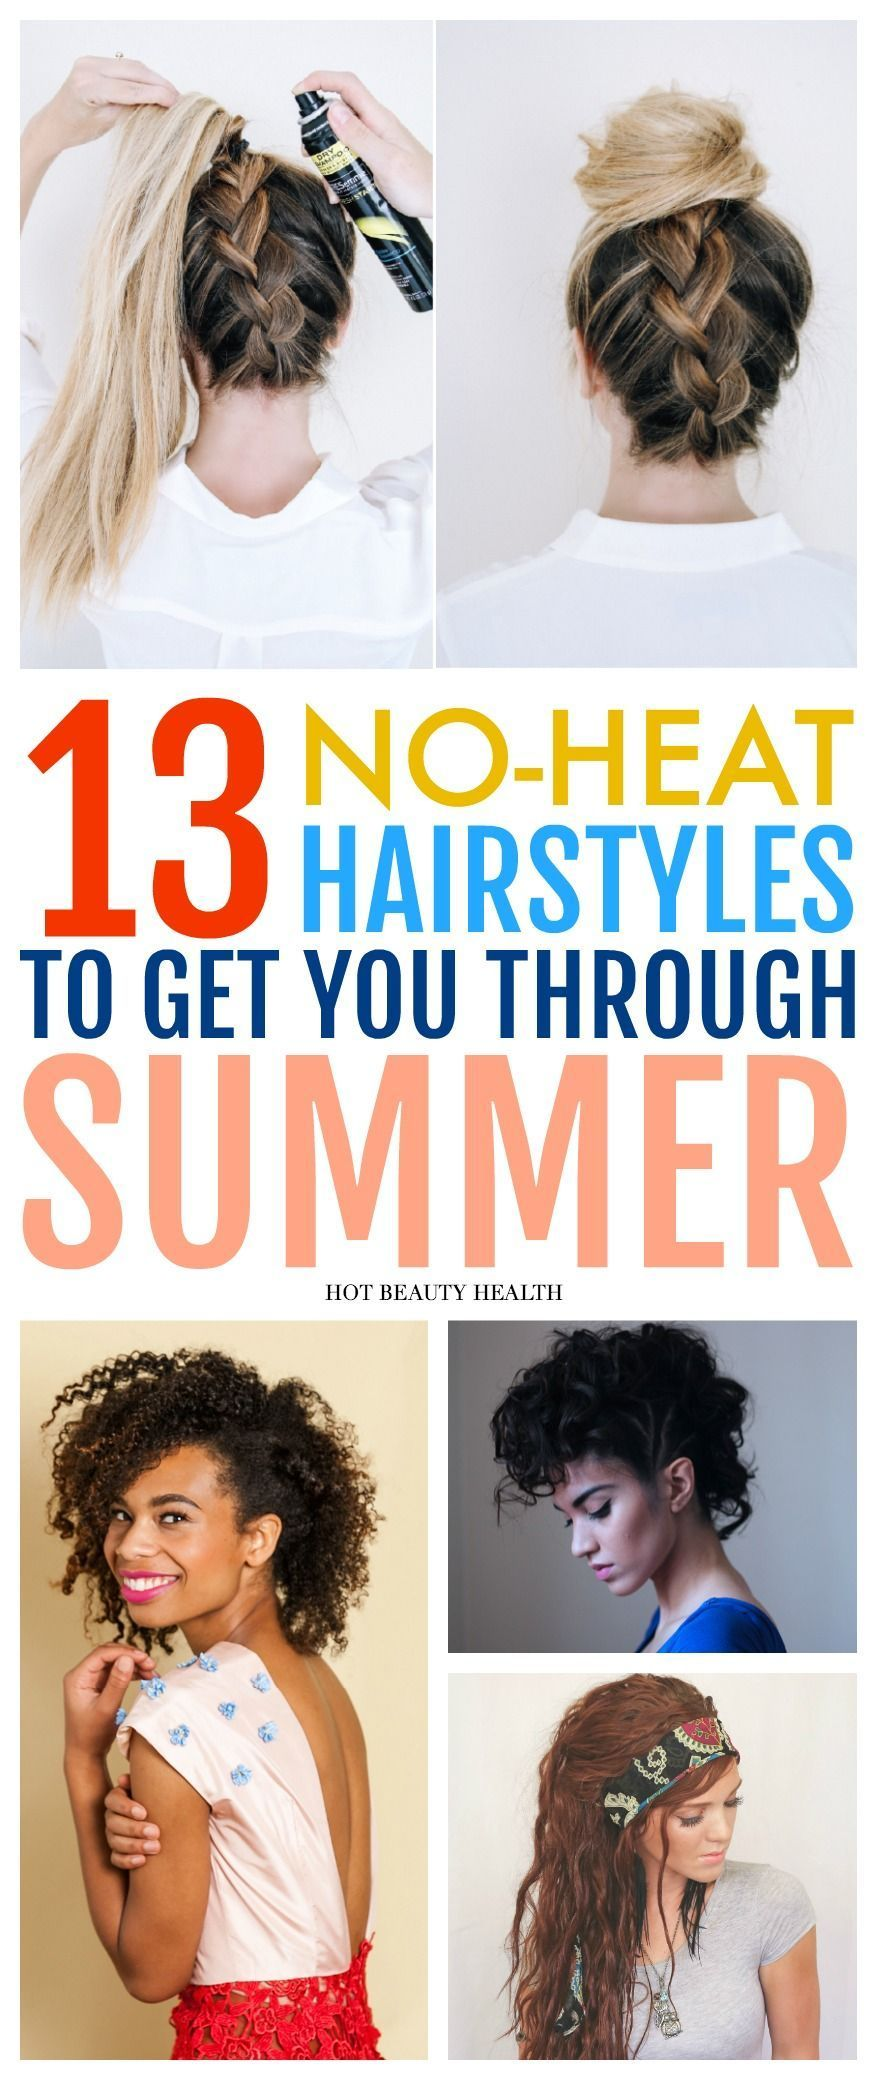 13 easy no heat hairstyles that will save your hair this